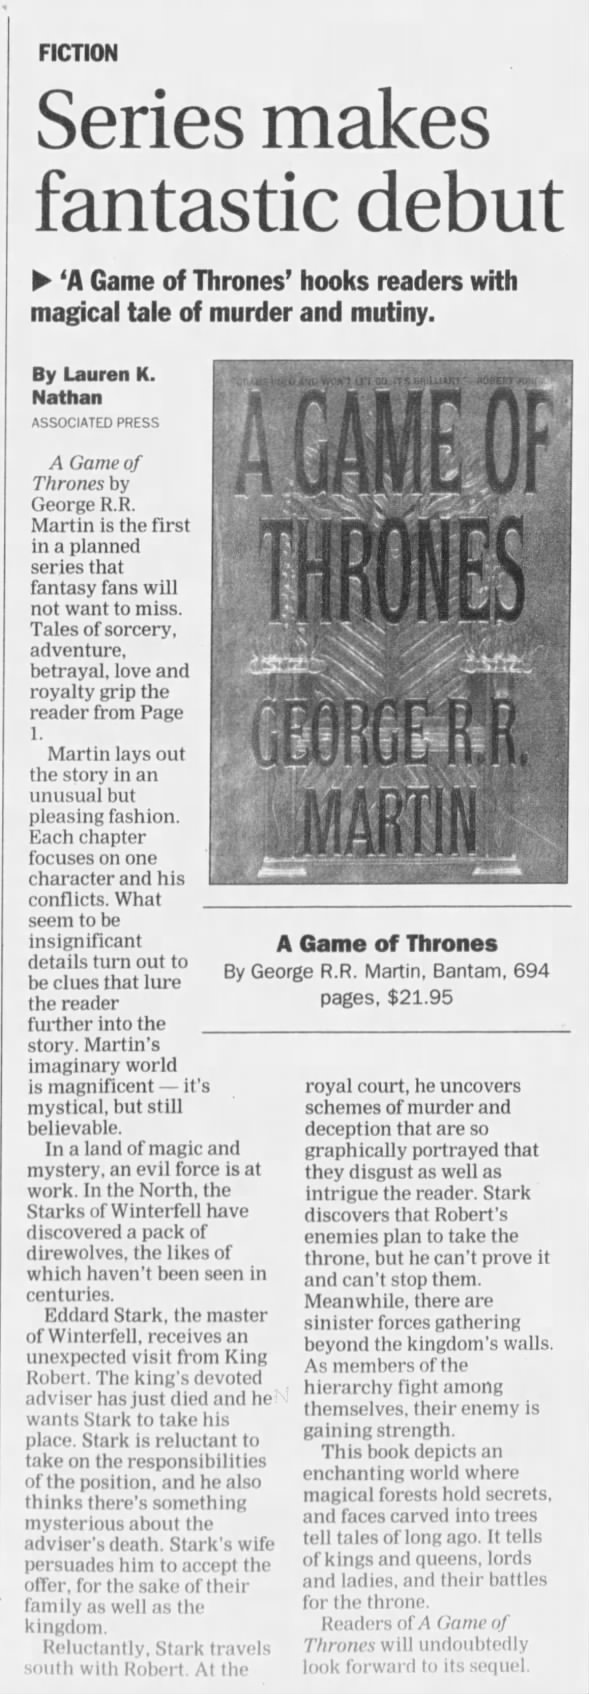 A Game of Thrones - 1996 review of series debut